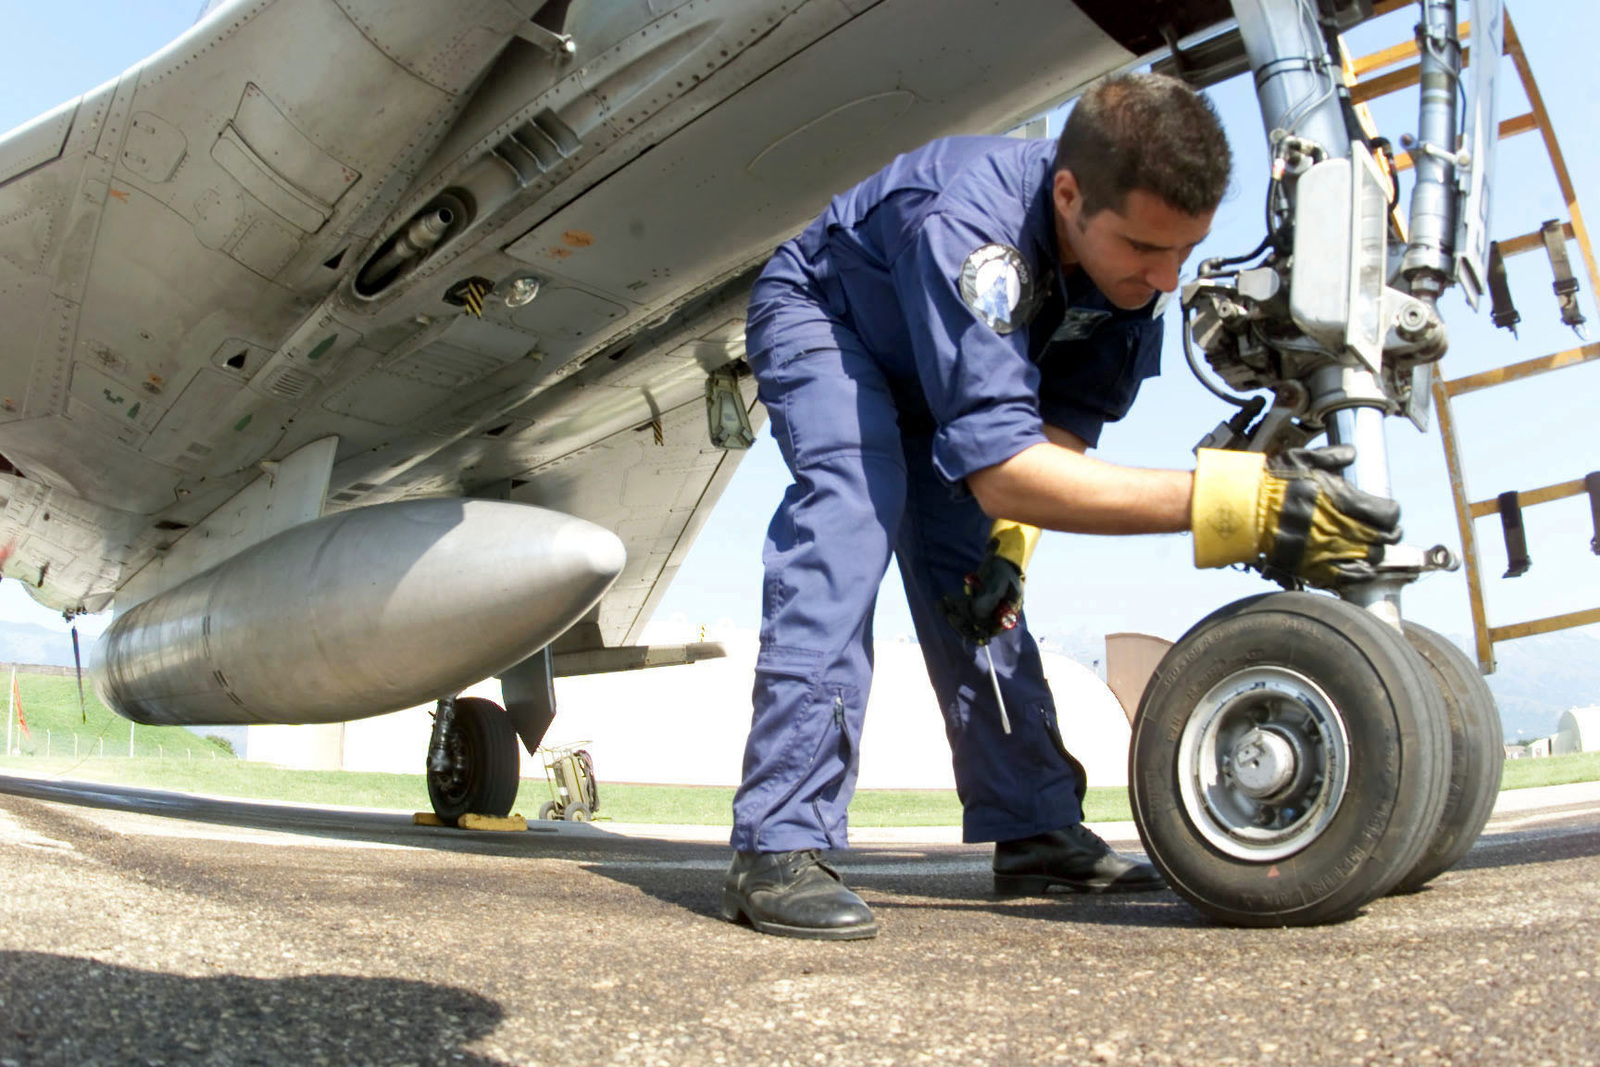 MASTER Sergeant Spyros Siakoulas, aircraft mechanic from the Hellinic Air Force, 114th Composite Group, 331st Tactical Fighter Wing, Greece, performs a post-flight inspection of the nose-gear oleo strut of a Mirage 2000 Fighter. The Hellinic unit is at Aviano Air Base, to train with the 510th Fighter Squadron. The Mirages provide valuable dissimilar training allowing 510th Fighter pilots the opportunity to train against other types of aircraft. (Duplicate image, see also DF-SD-01-01807 or search 000816-F-4728F-005)